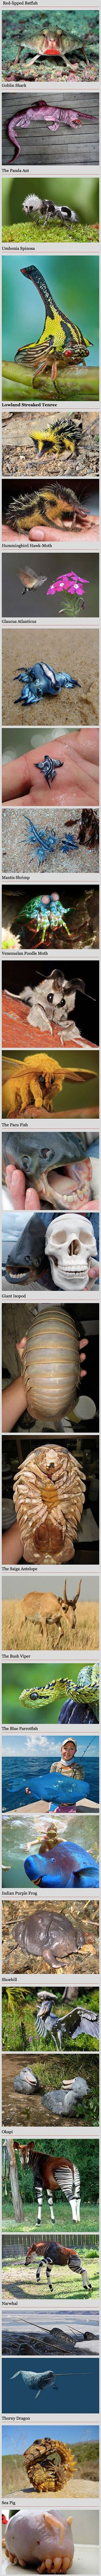 We've rounded up some bizarre and crazy animals you never knew existed. I knew about the goblin shark, the mantis shrimp, the bush viper, the narwhal, and the thorny dragon! What about you? -Grace: